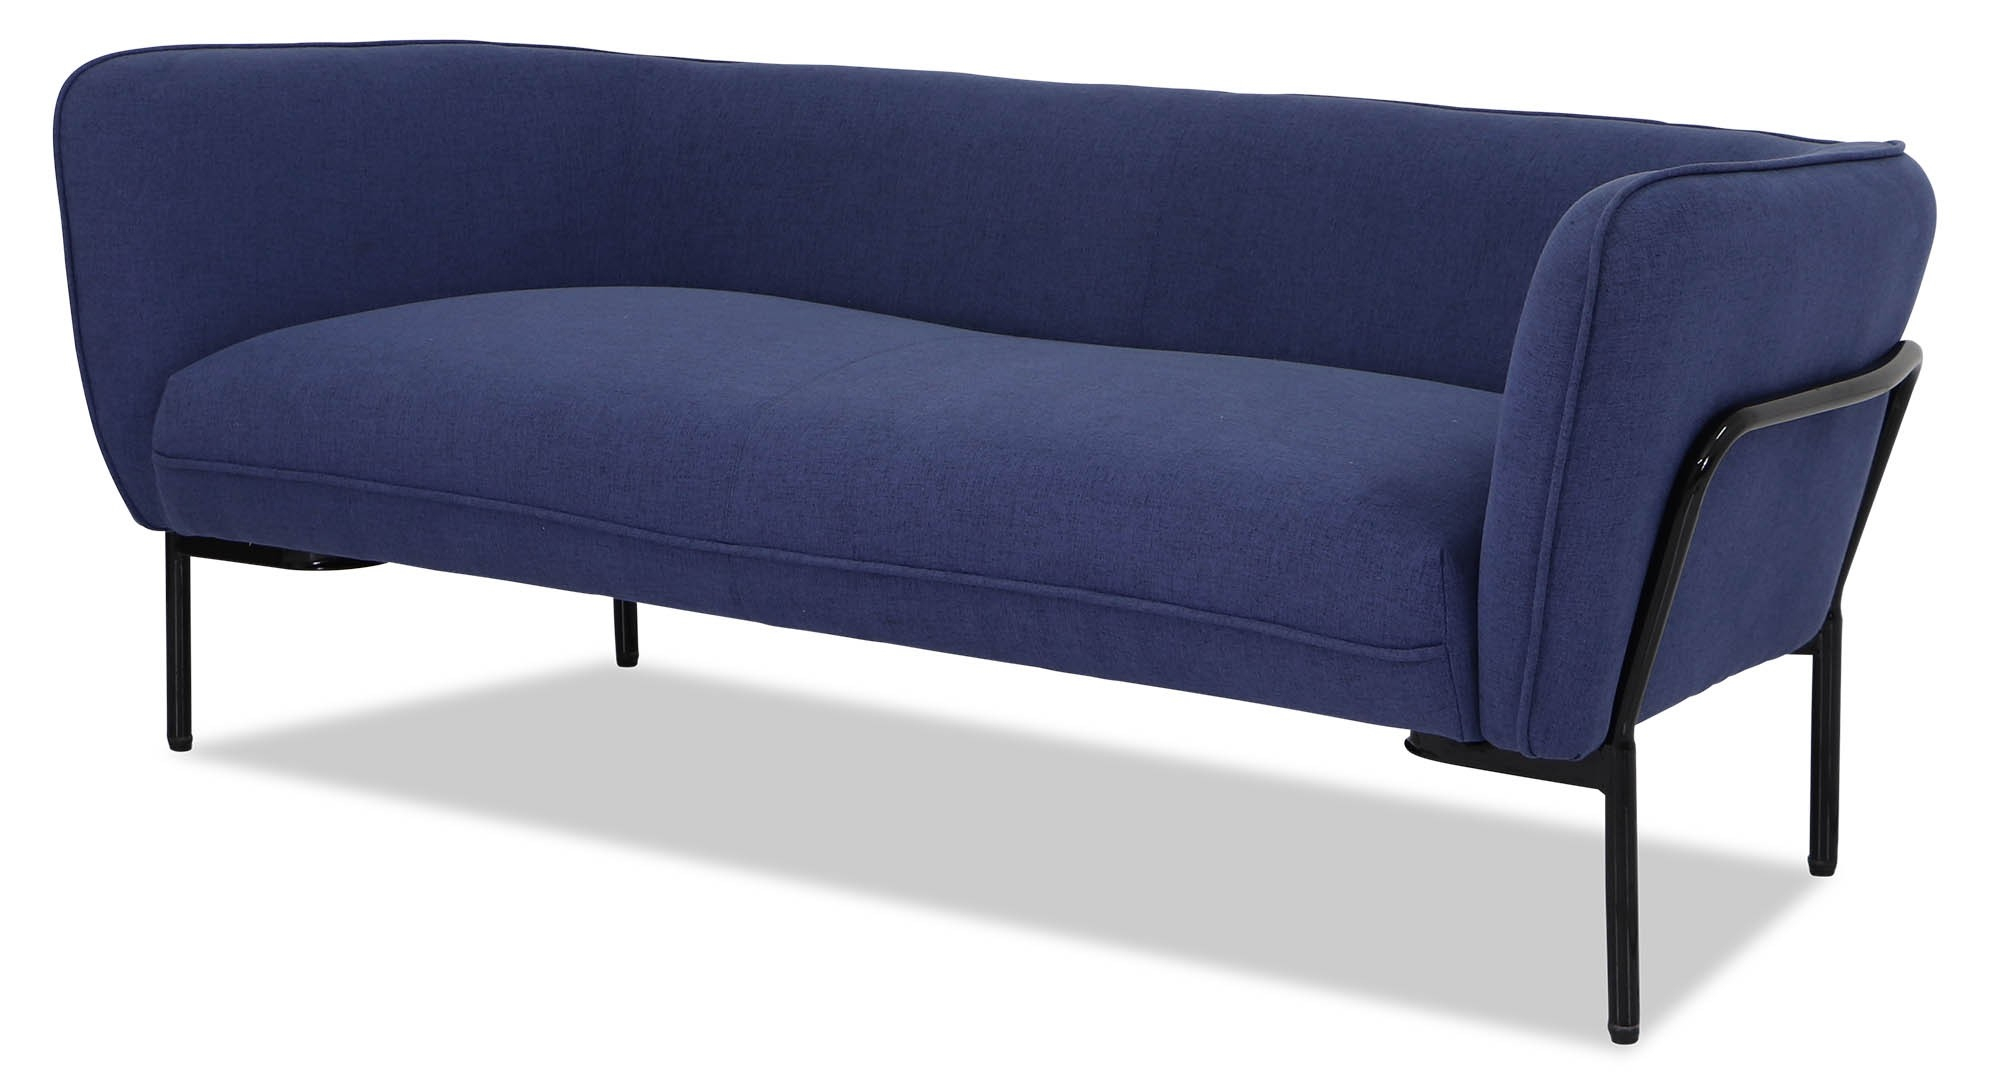 Karen Sofa In Ink Blue With Black Iron Stand | Furniture & Home With Karen Sofa Chairs (View 9 of 25)